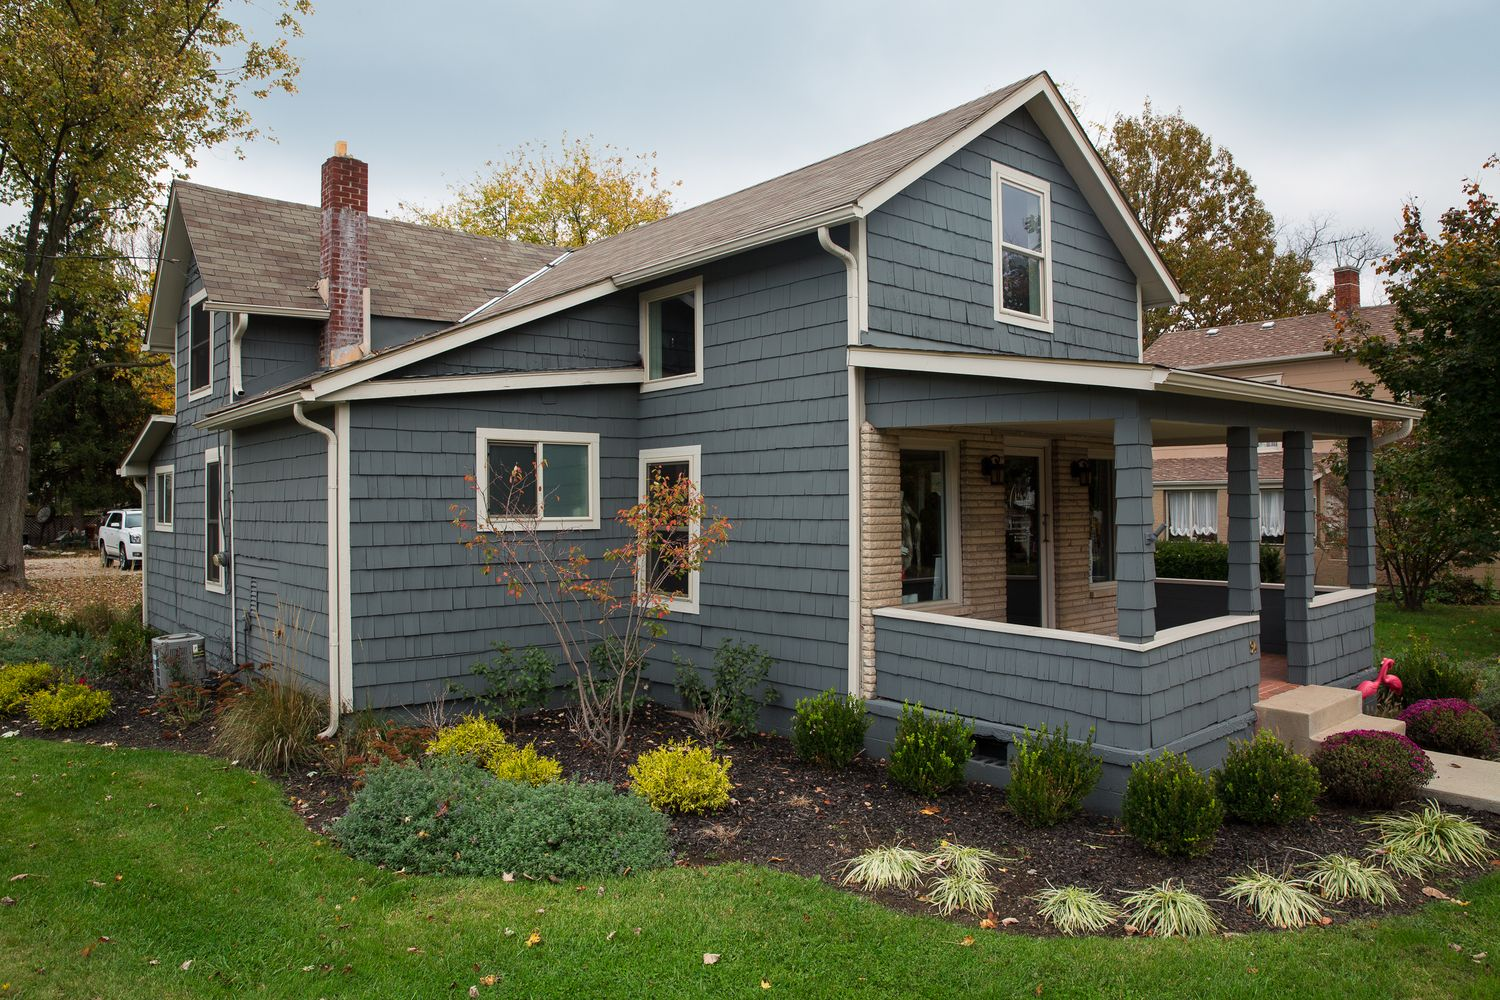 Gallery House Paint Exterior House Exterior Colors Blue Gray House Exterior